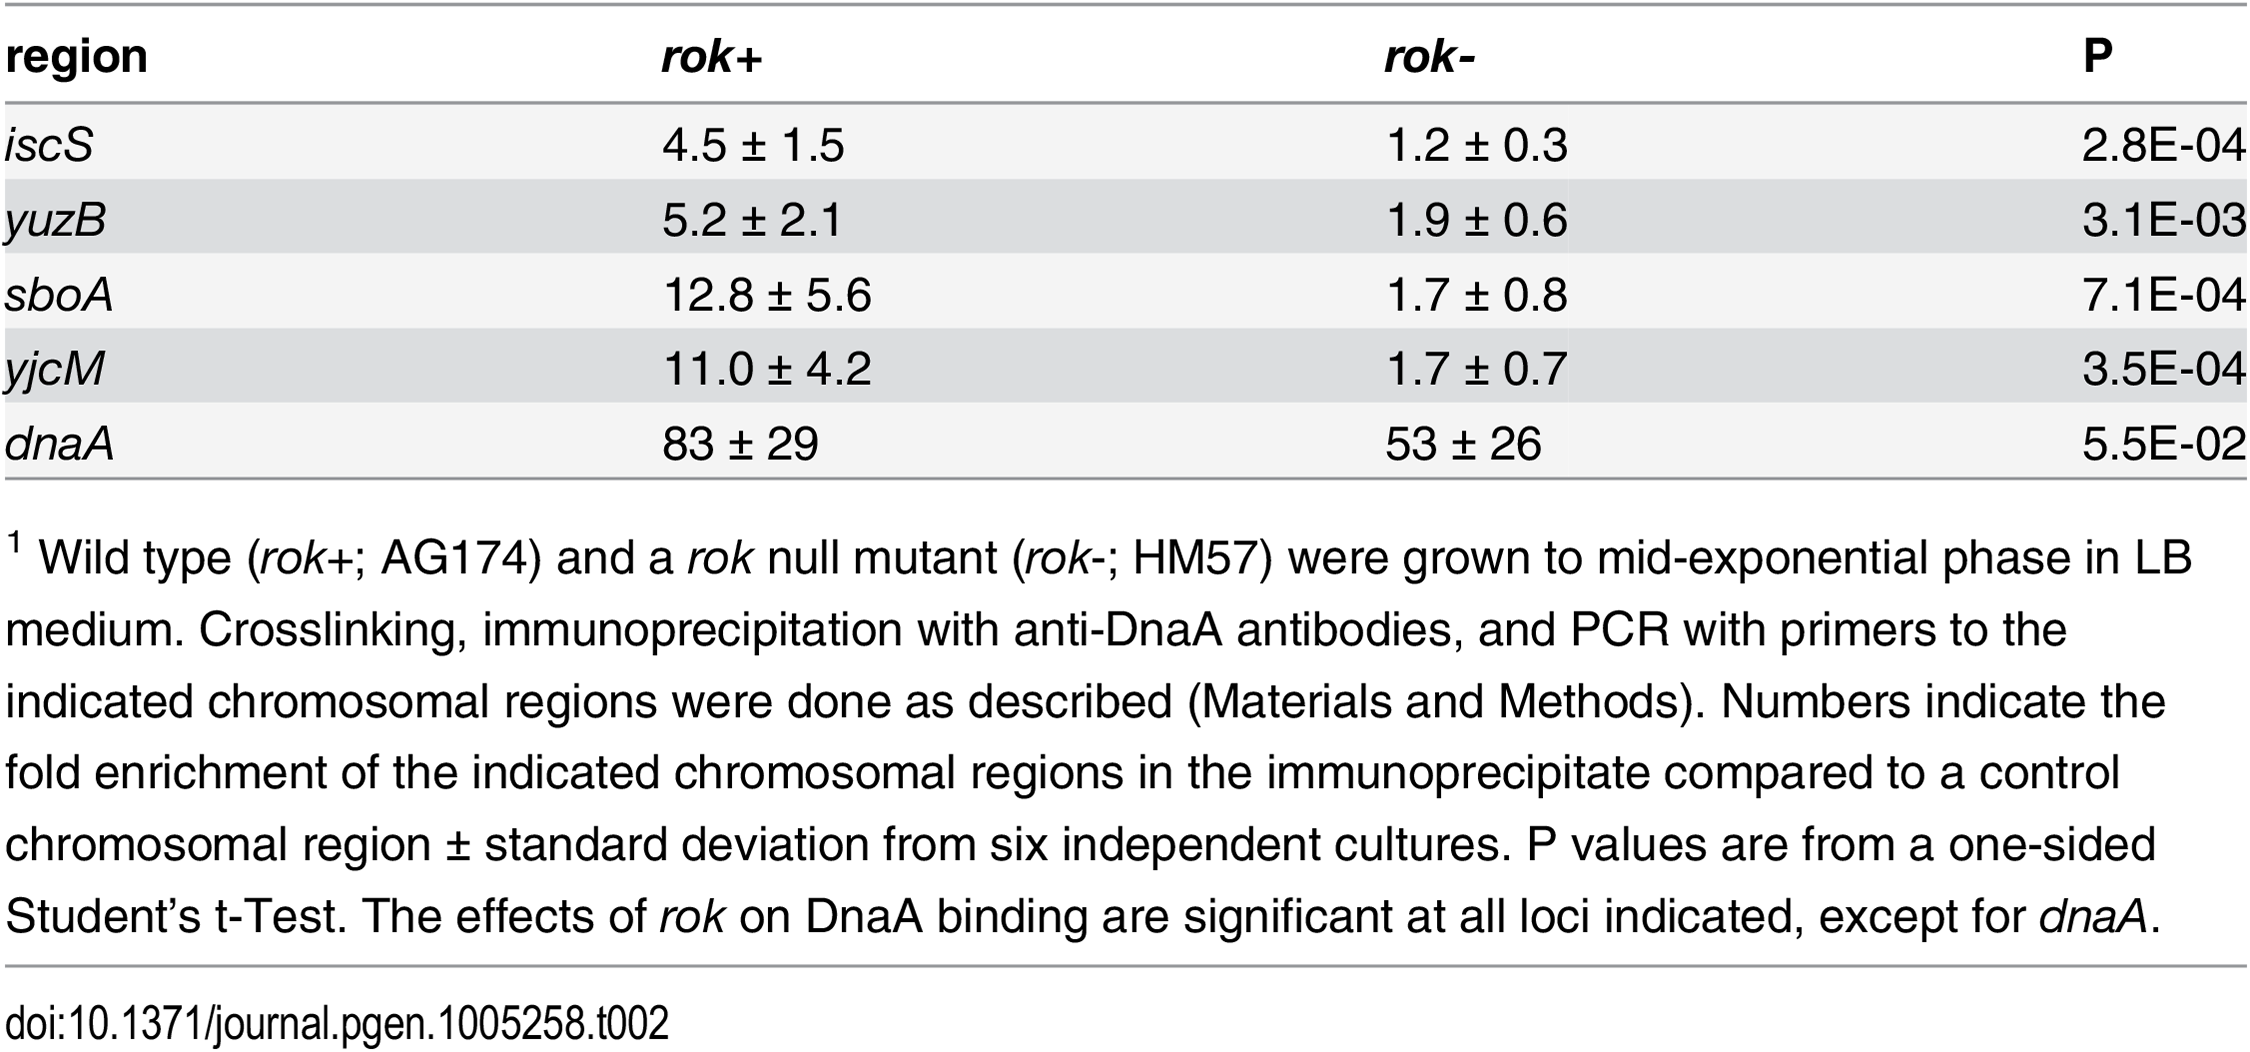 Effects of Rok on binding by DnaA in vivo<em class=&quot;ref&quot;><sup>1</sup></em>.